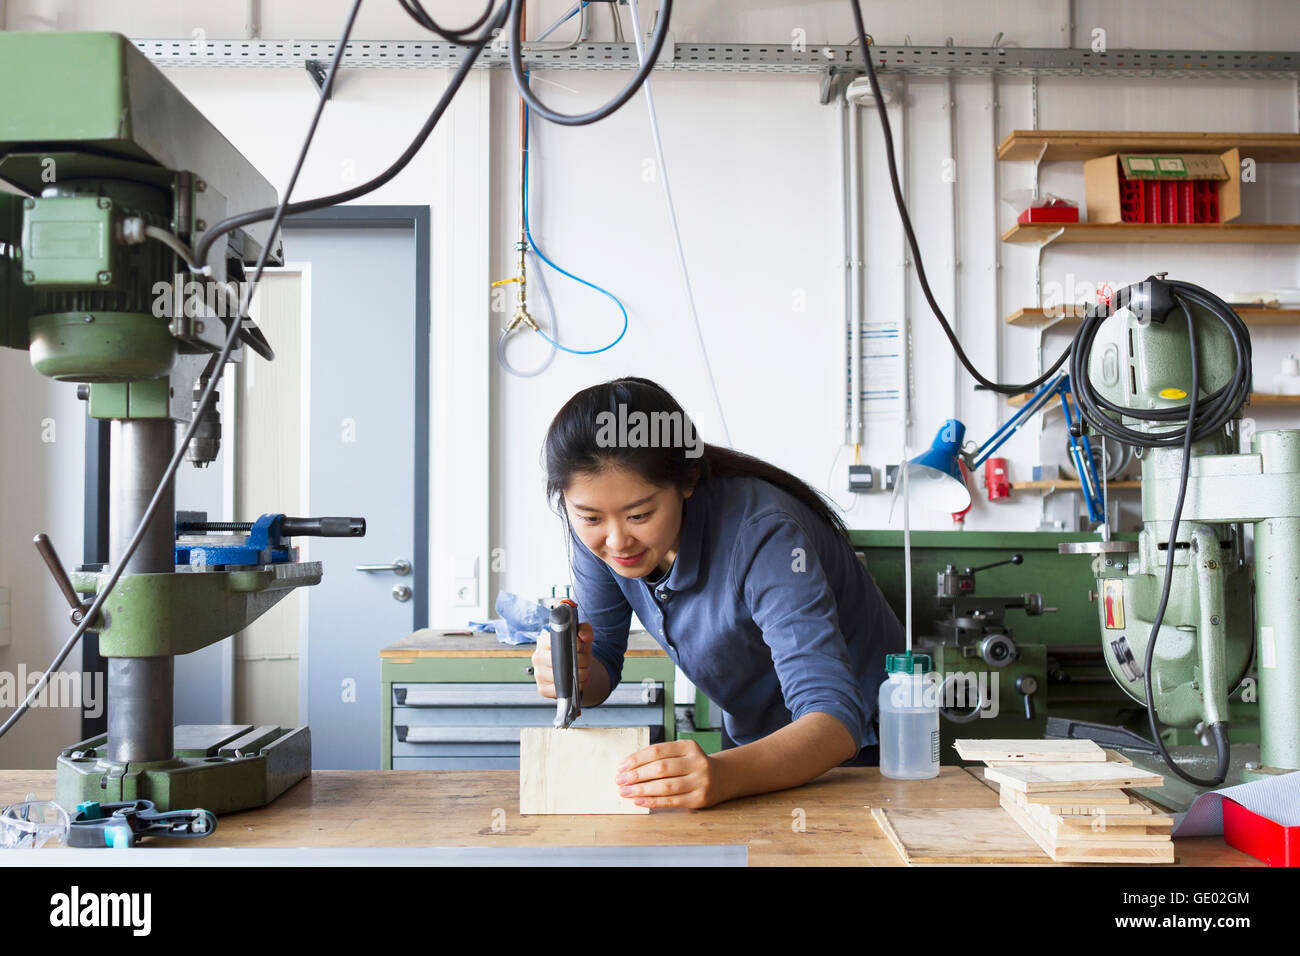 Young female carpenter sawing a piece of wood in an industrial plant, Freiburg im Breisgau, Baden-Württemberg, - Stock Image